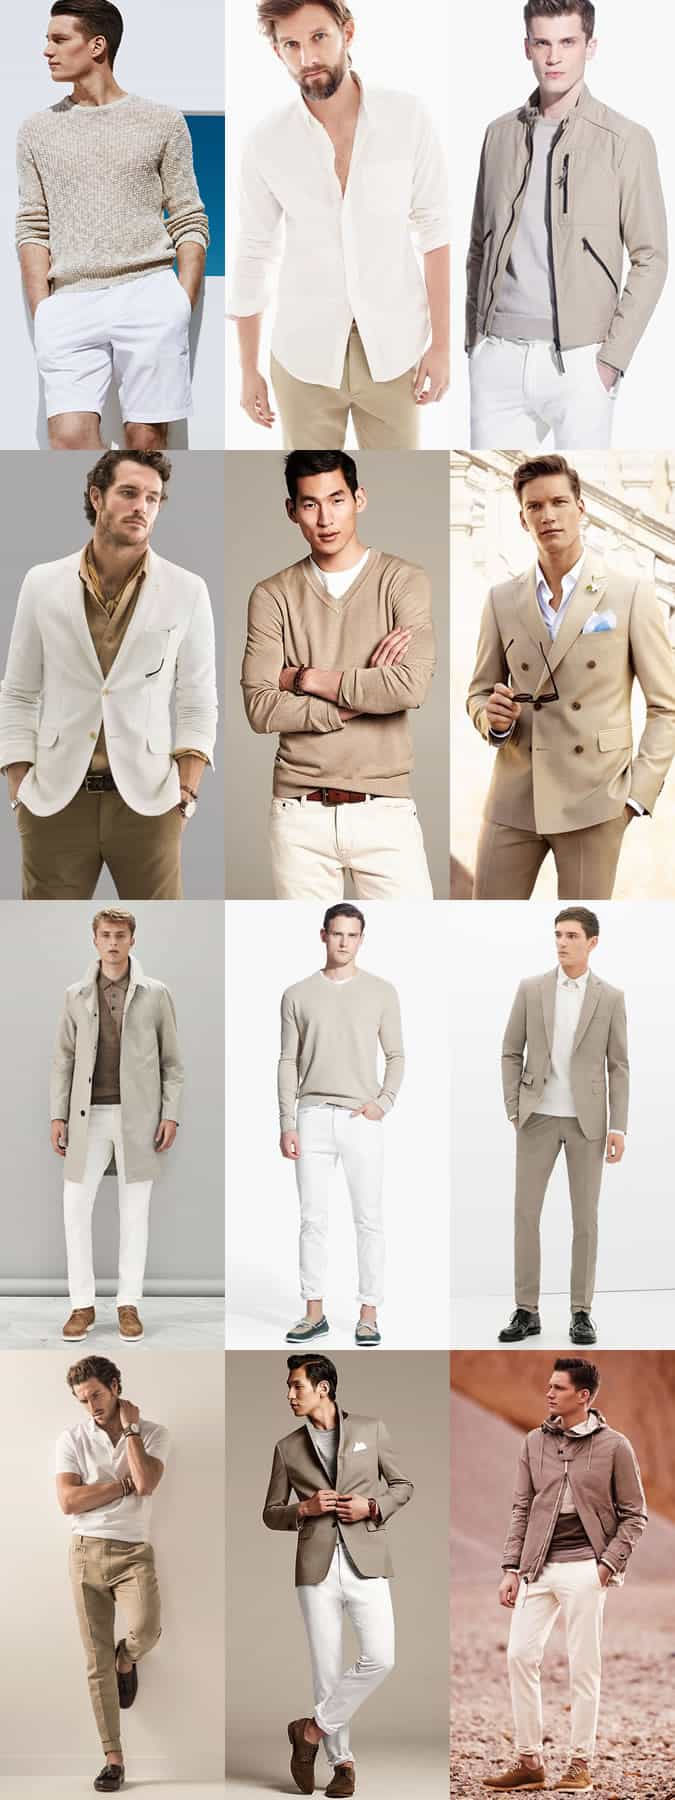 Men's Khaki and White Combinations - Spring/Summer Outfit Inspiration Lookbook